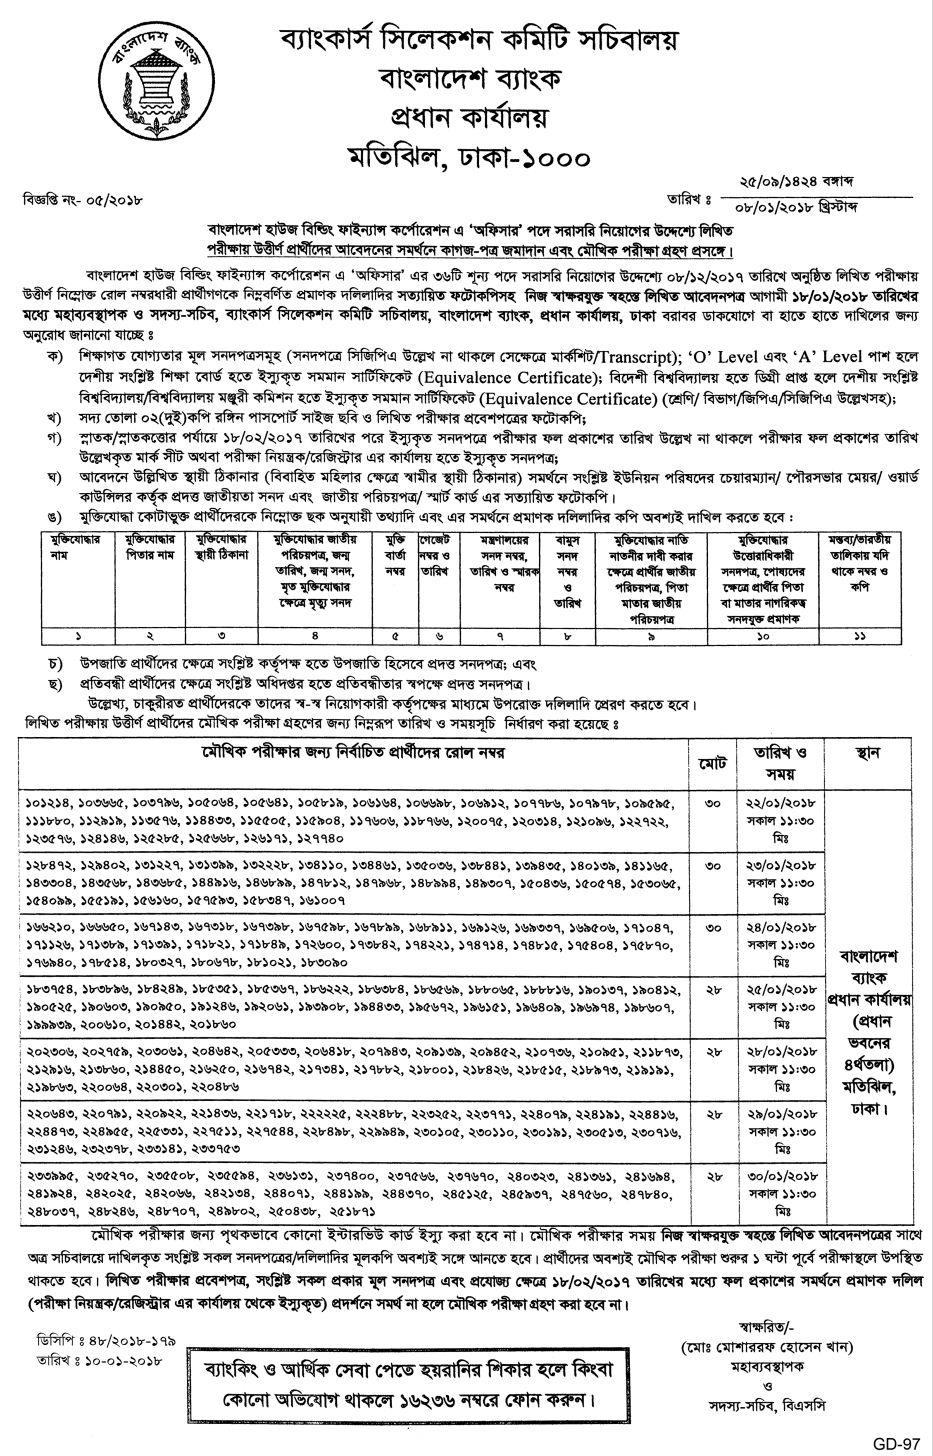 Bangladesh House Building Finance Corporation (BHBFC) Officer Written Test Result and Viva Test Date and Time Schedule